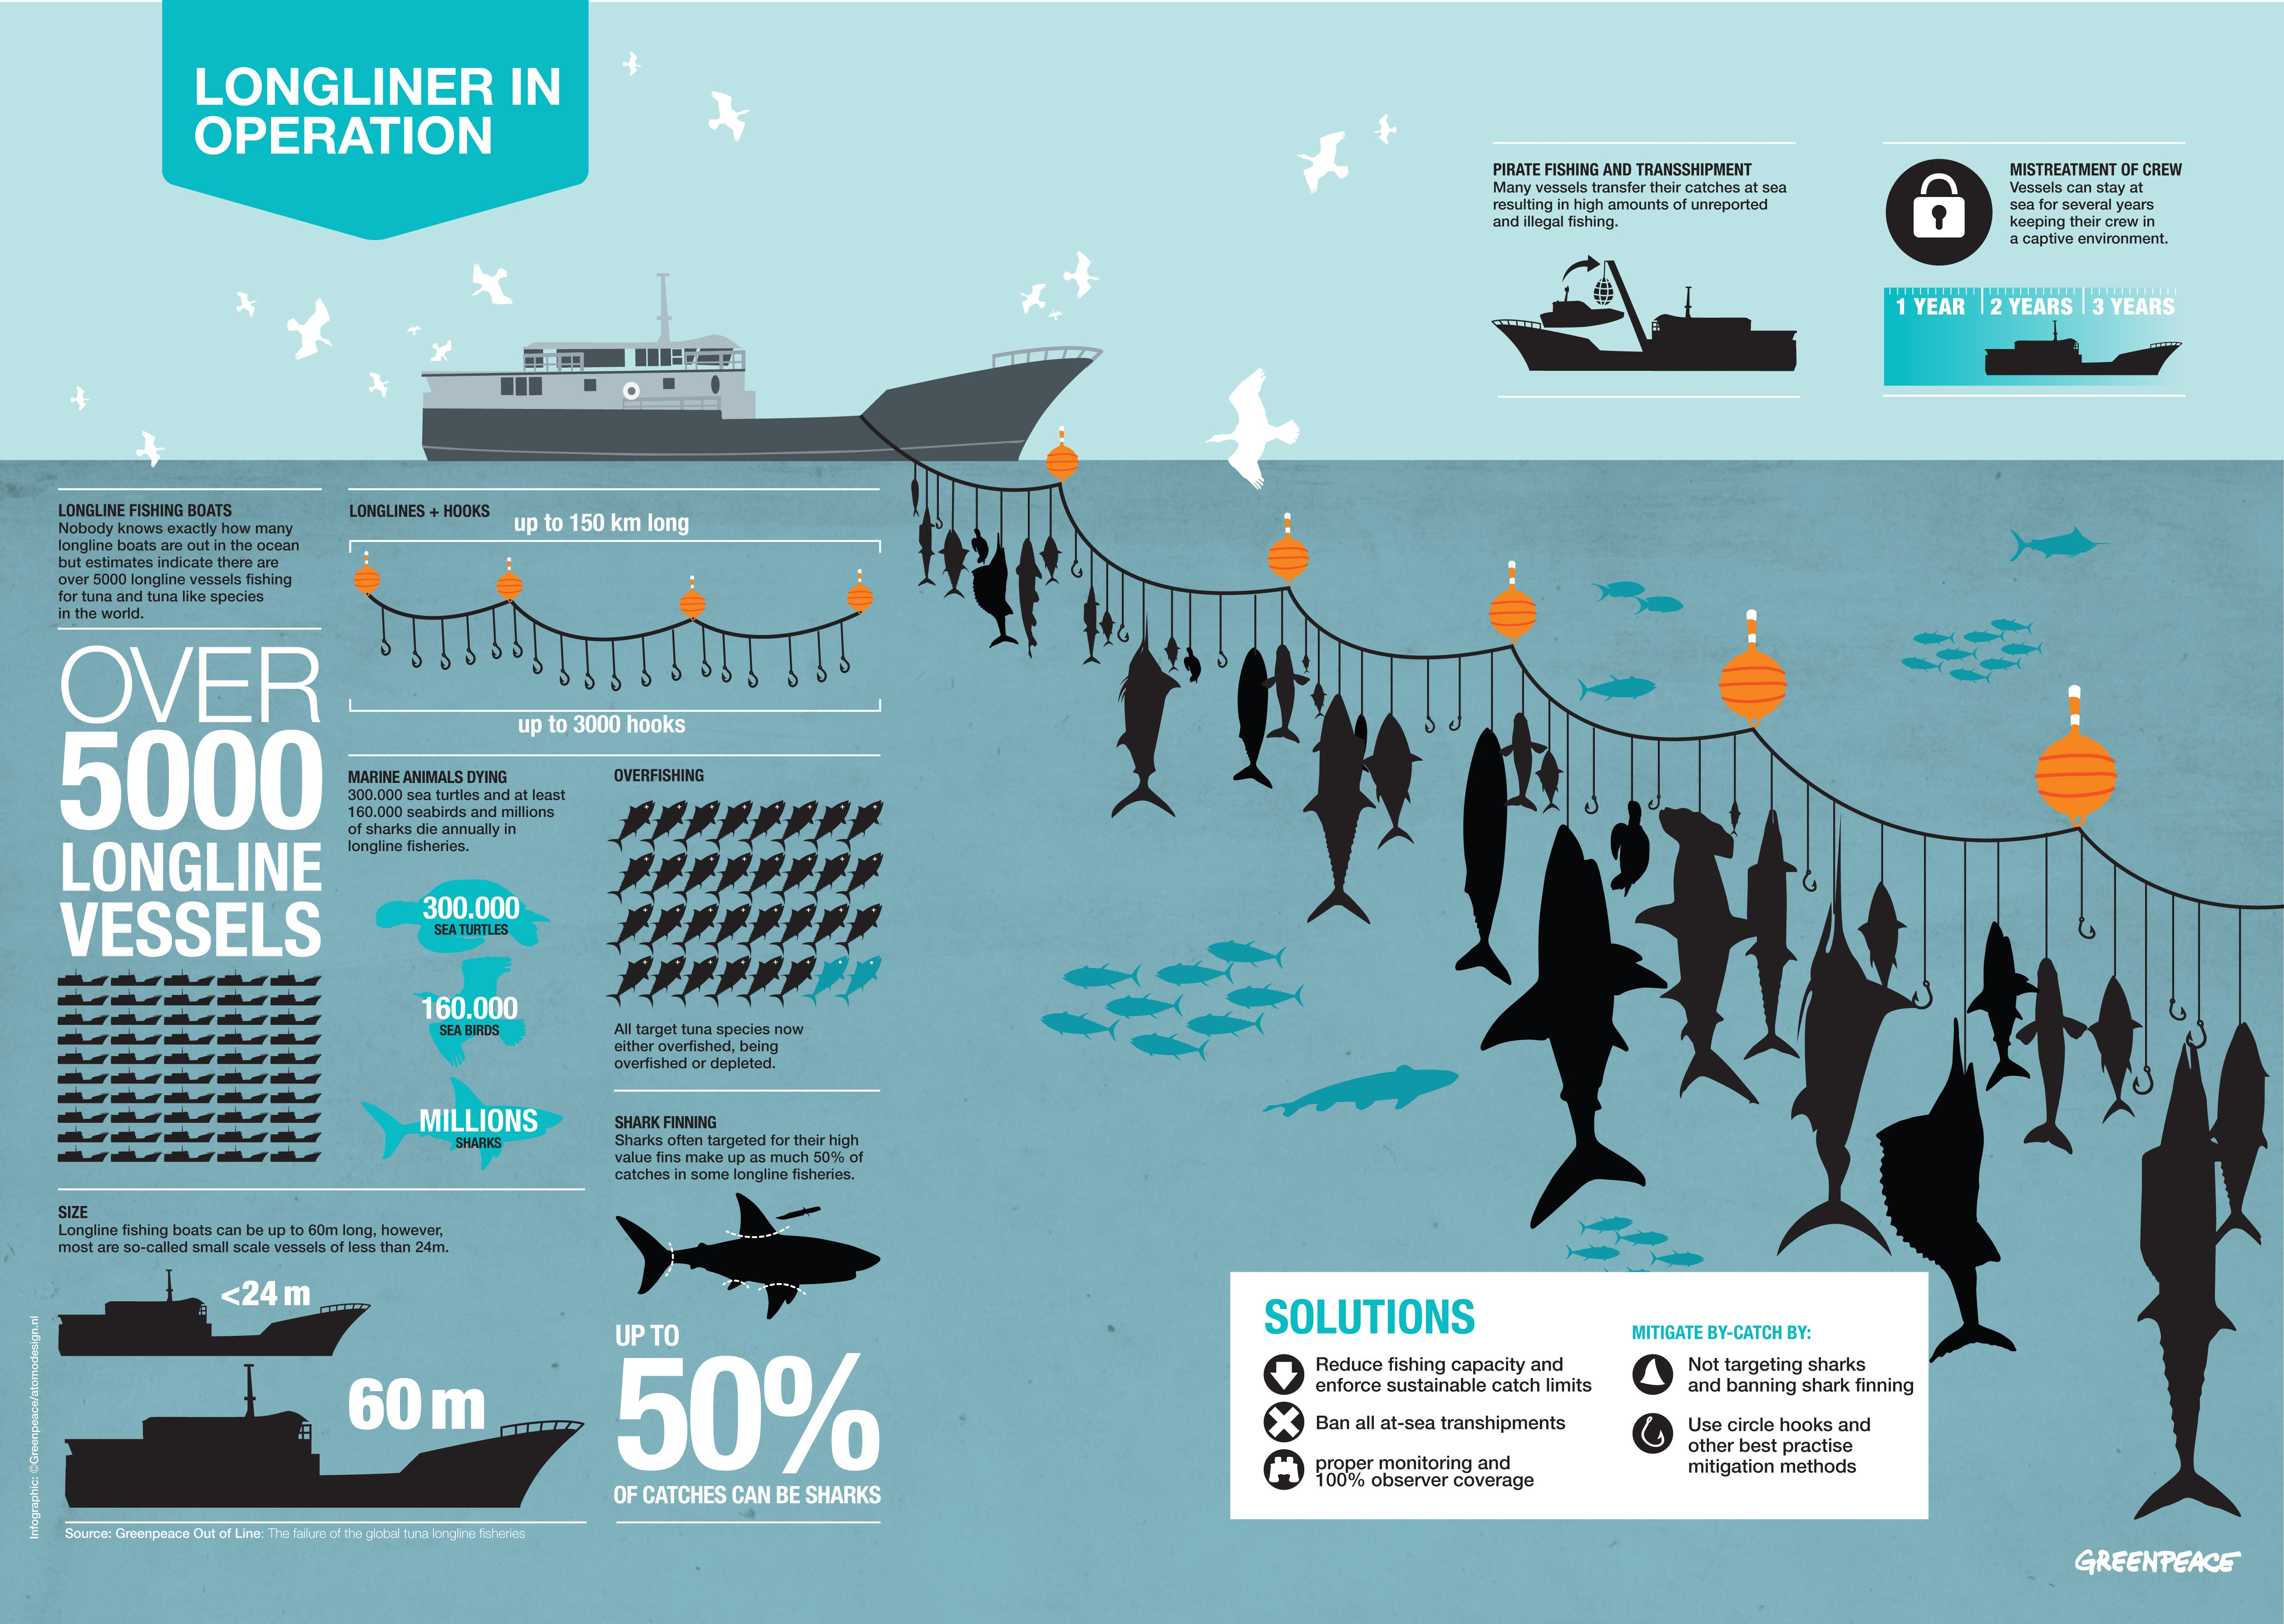 Pin by buttfacemonkey on Over Fishing Infographic, Tuna